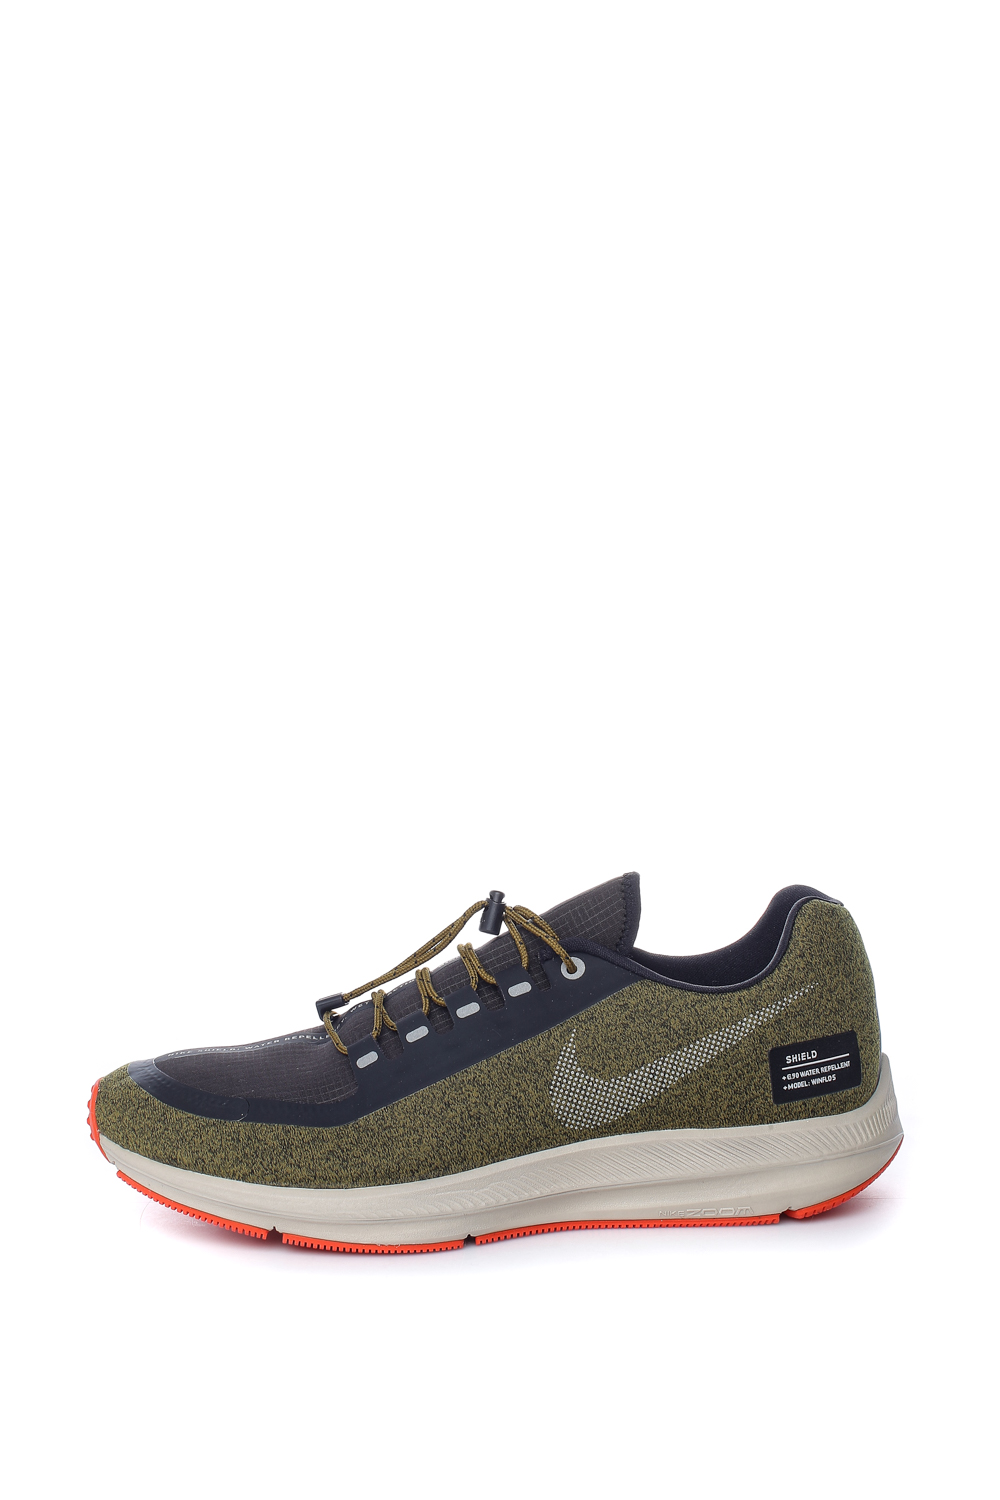 3b37d66c2 -40% Factory Outlet NIKE – Ανδρικά παπούτσια για τρέξιμο NIKE ZOOM WINFLO 5  RUN SHIELD χακί